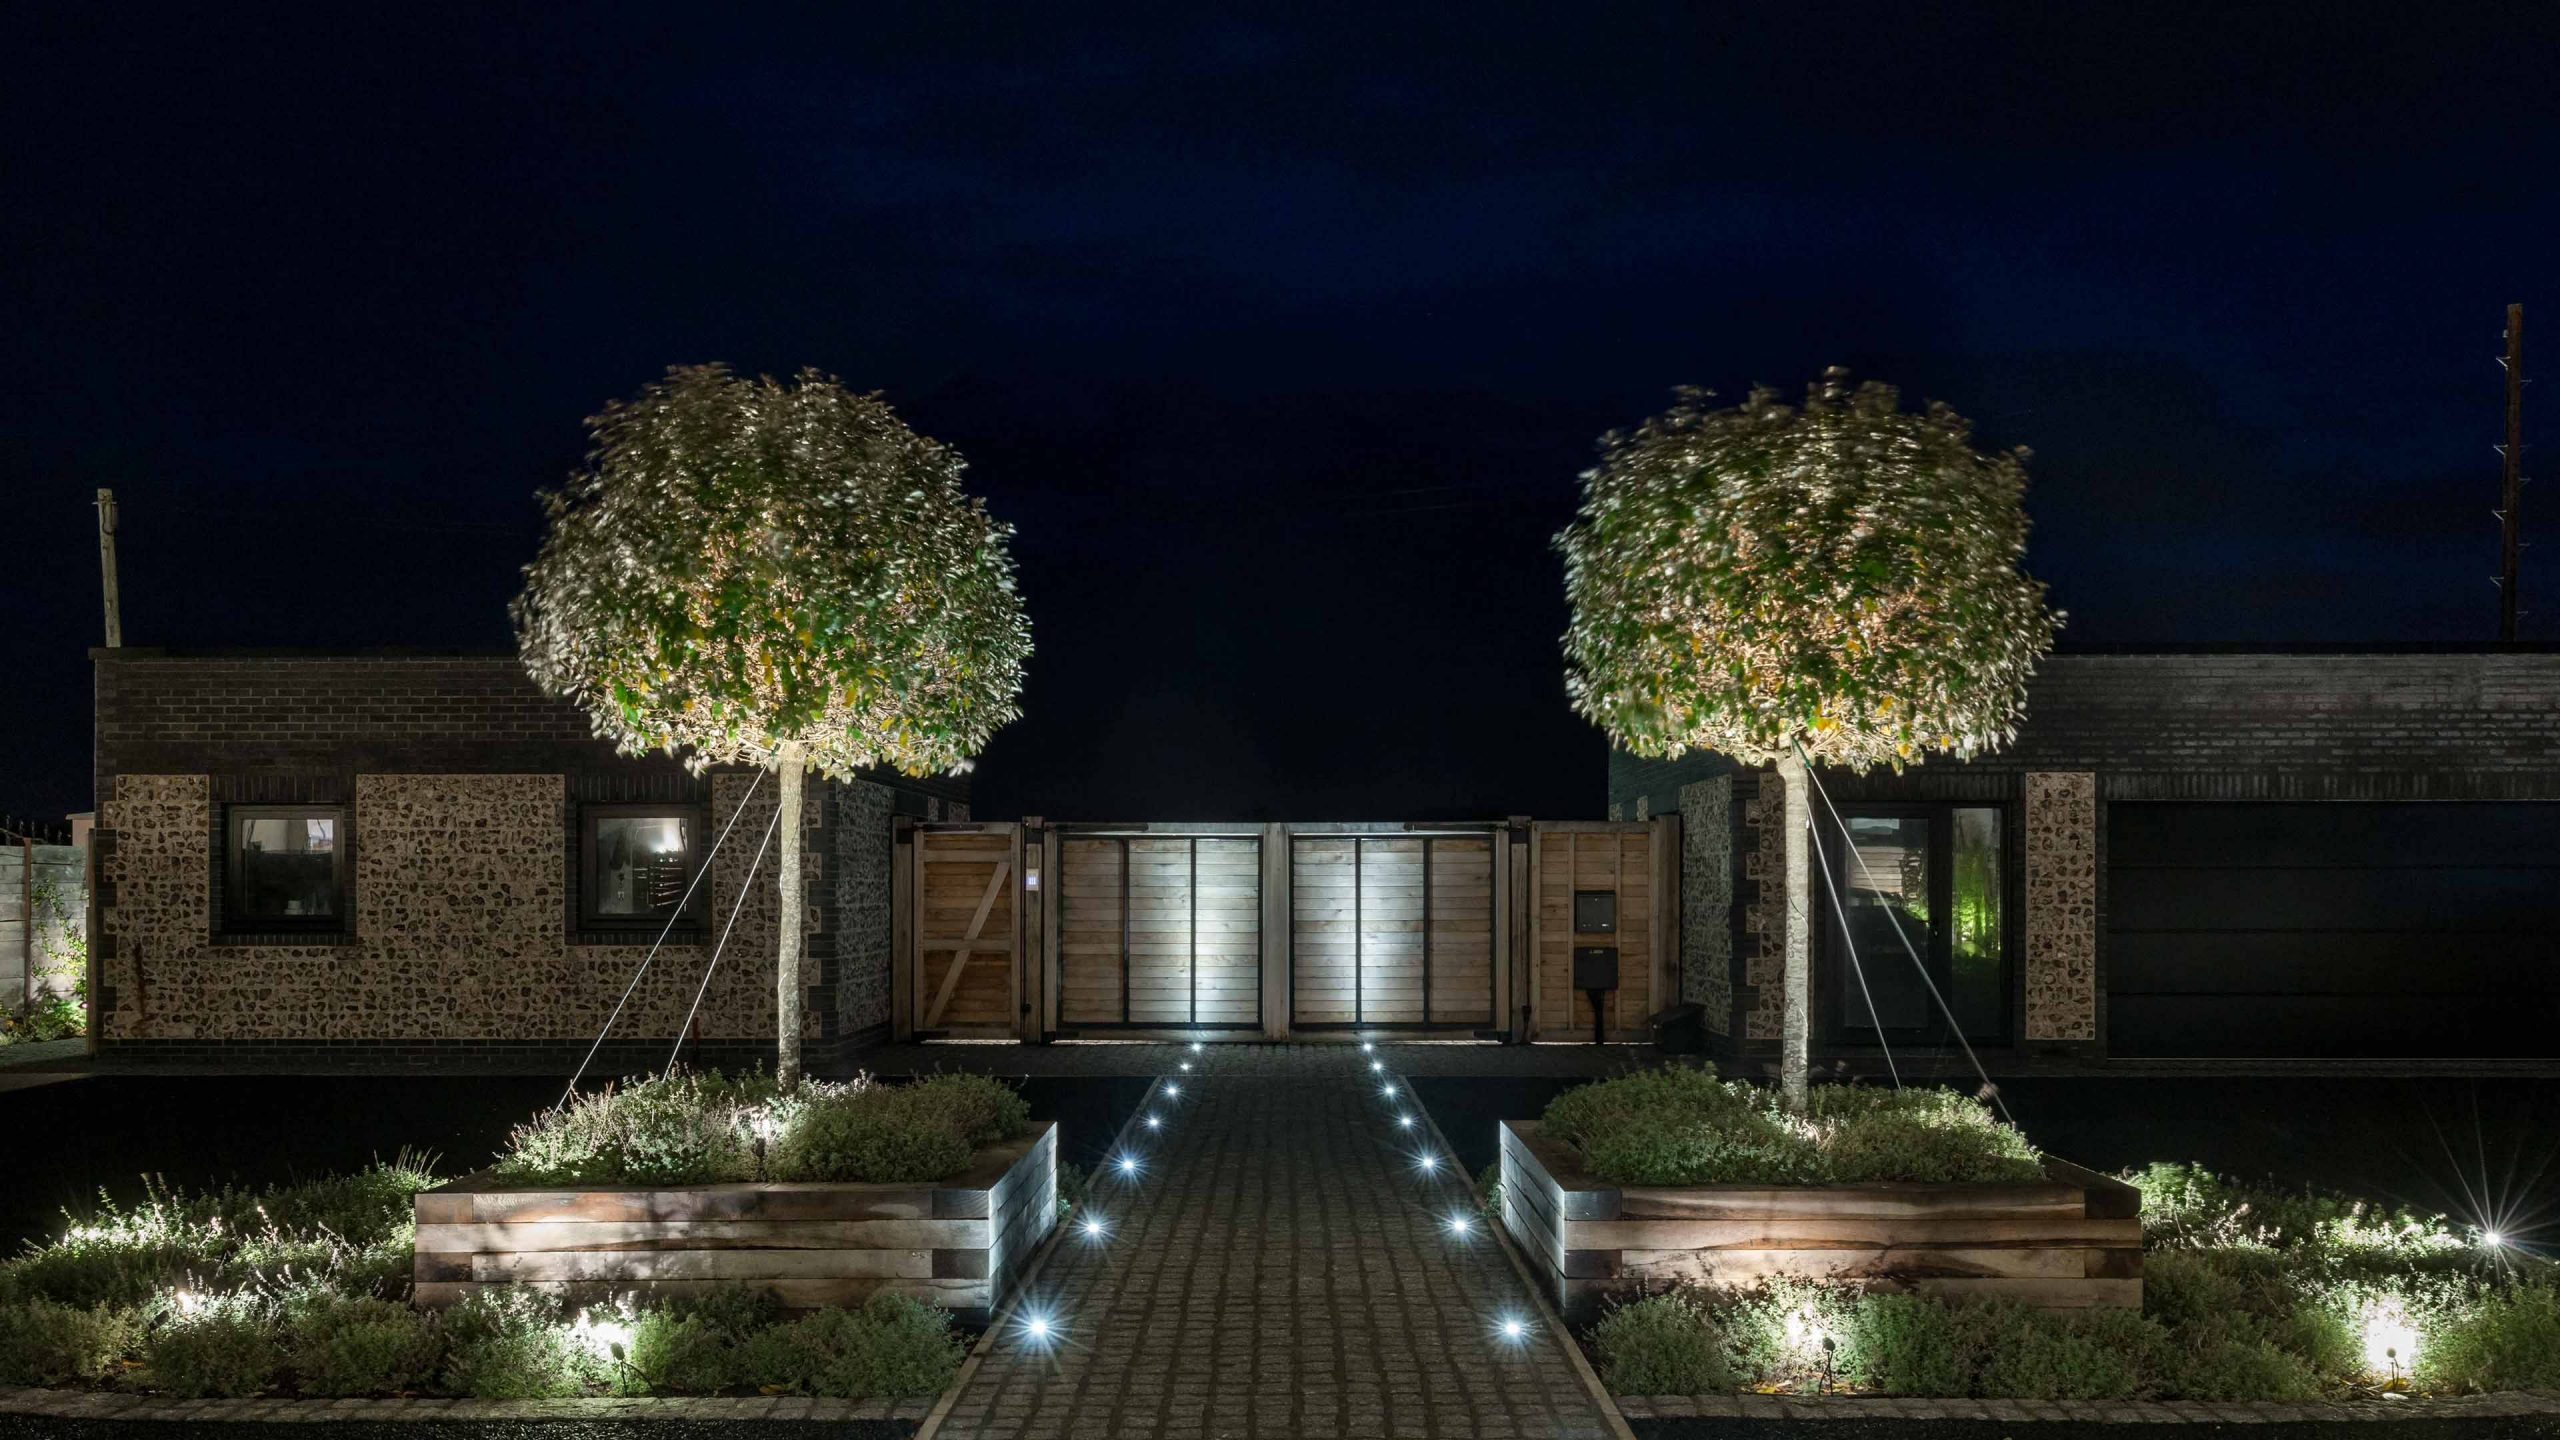 Lighting Design Scheme Landscape Residential Pathway Trees Studio N